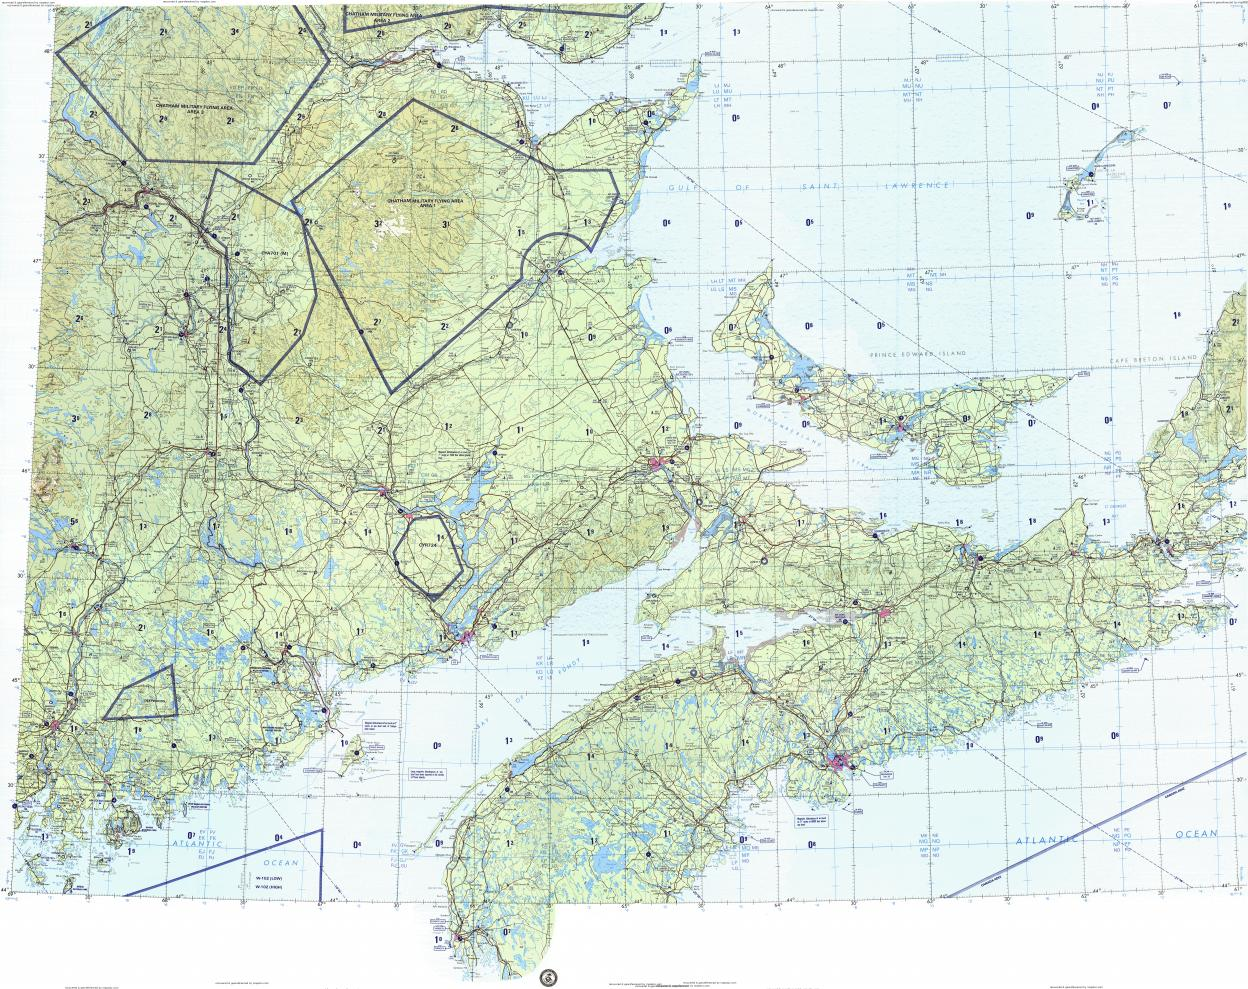 Download topographic map in area of Halifax Saint John Moncton